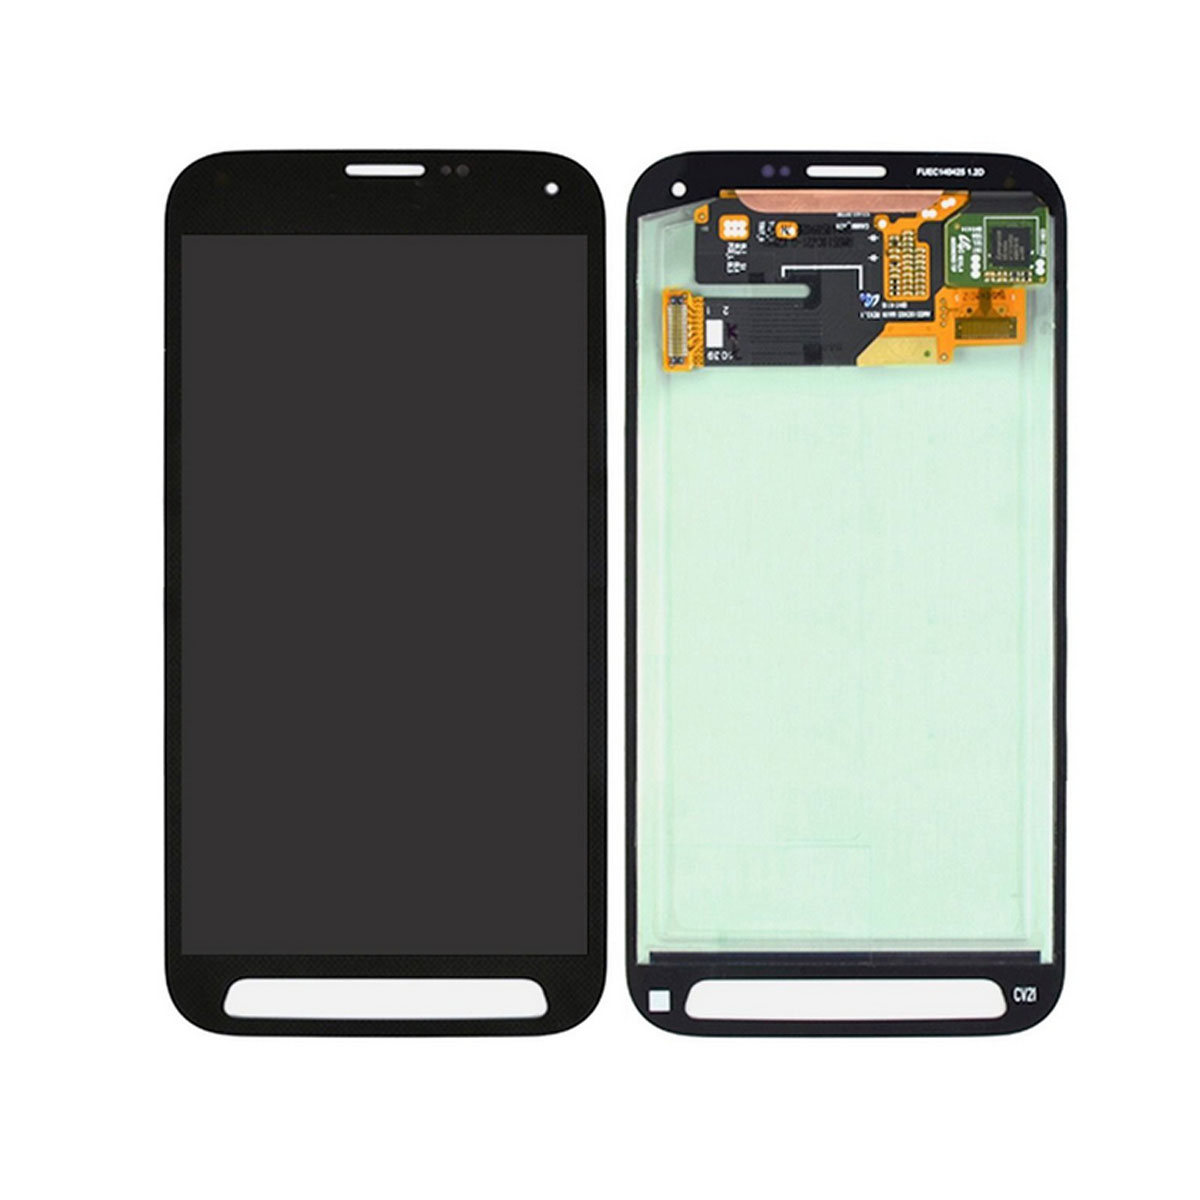 samsung galaxy s5 active lcd. Black Bedroom Furniture Sets. Home Design Ideas